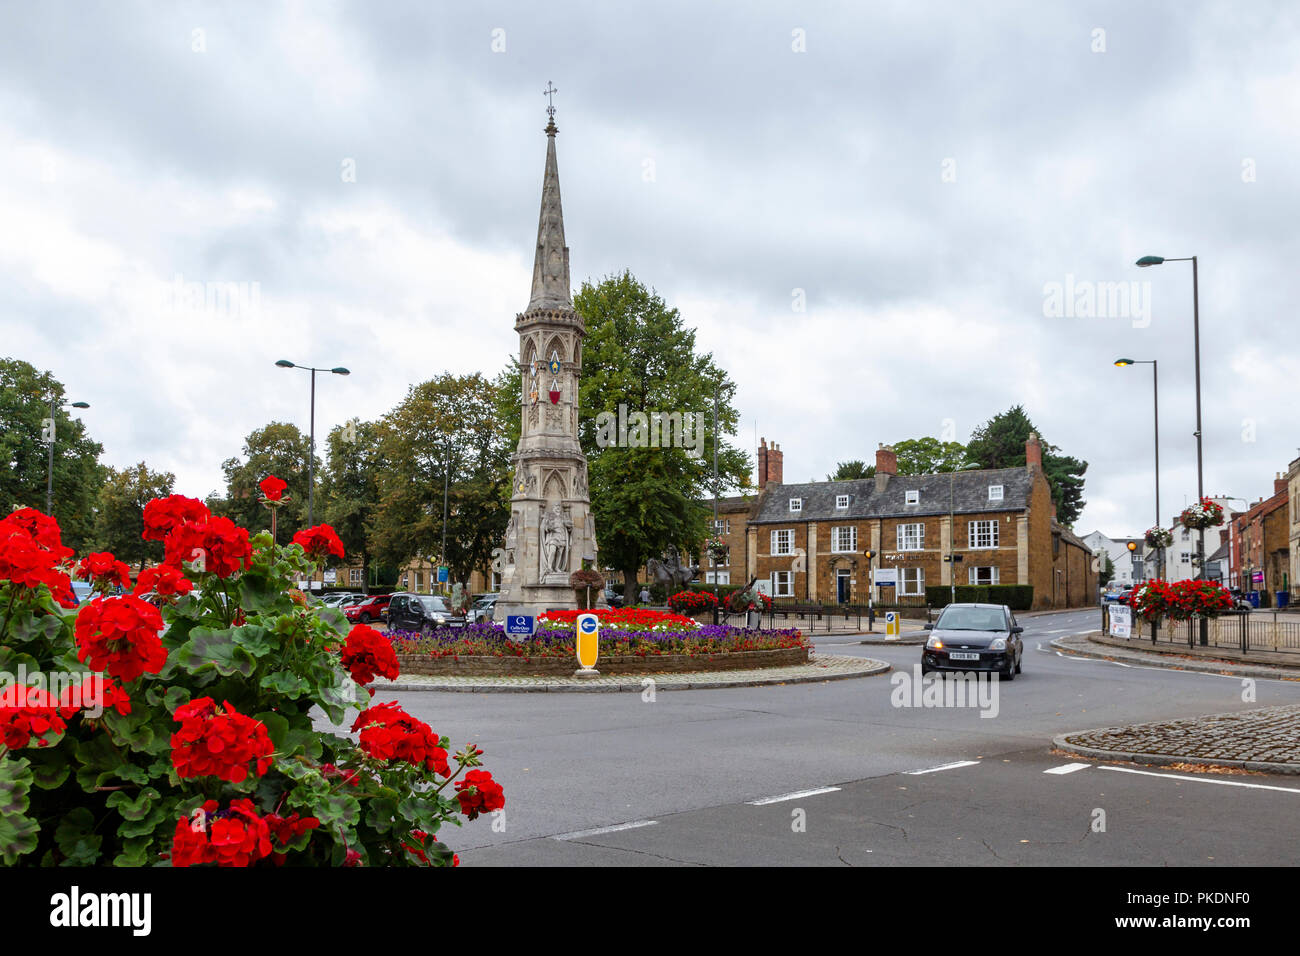 Council Offices in Banbury Oxfordshire, uk. - Stock Image